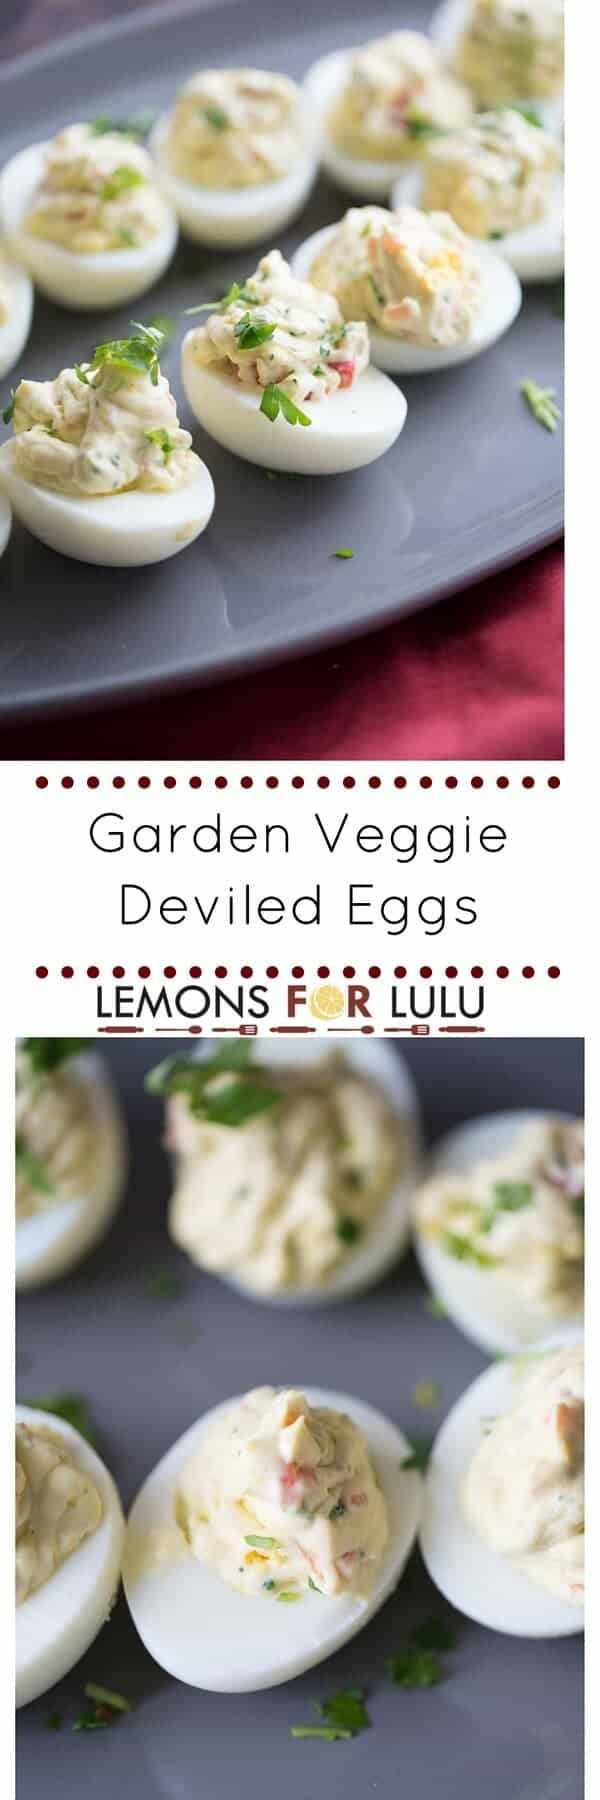 Nothing beats a good deviled egg recipe except for a simple deviled egg recipe and this is both! Fresh garden veggies and ranch seasoning make these little eggs taste fantastic!